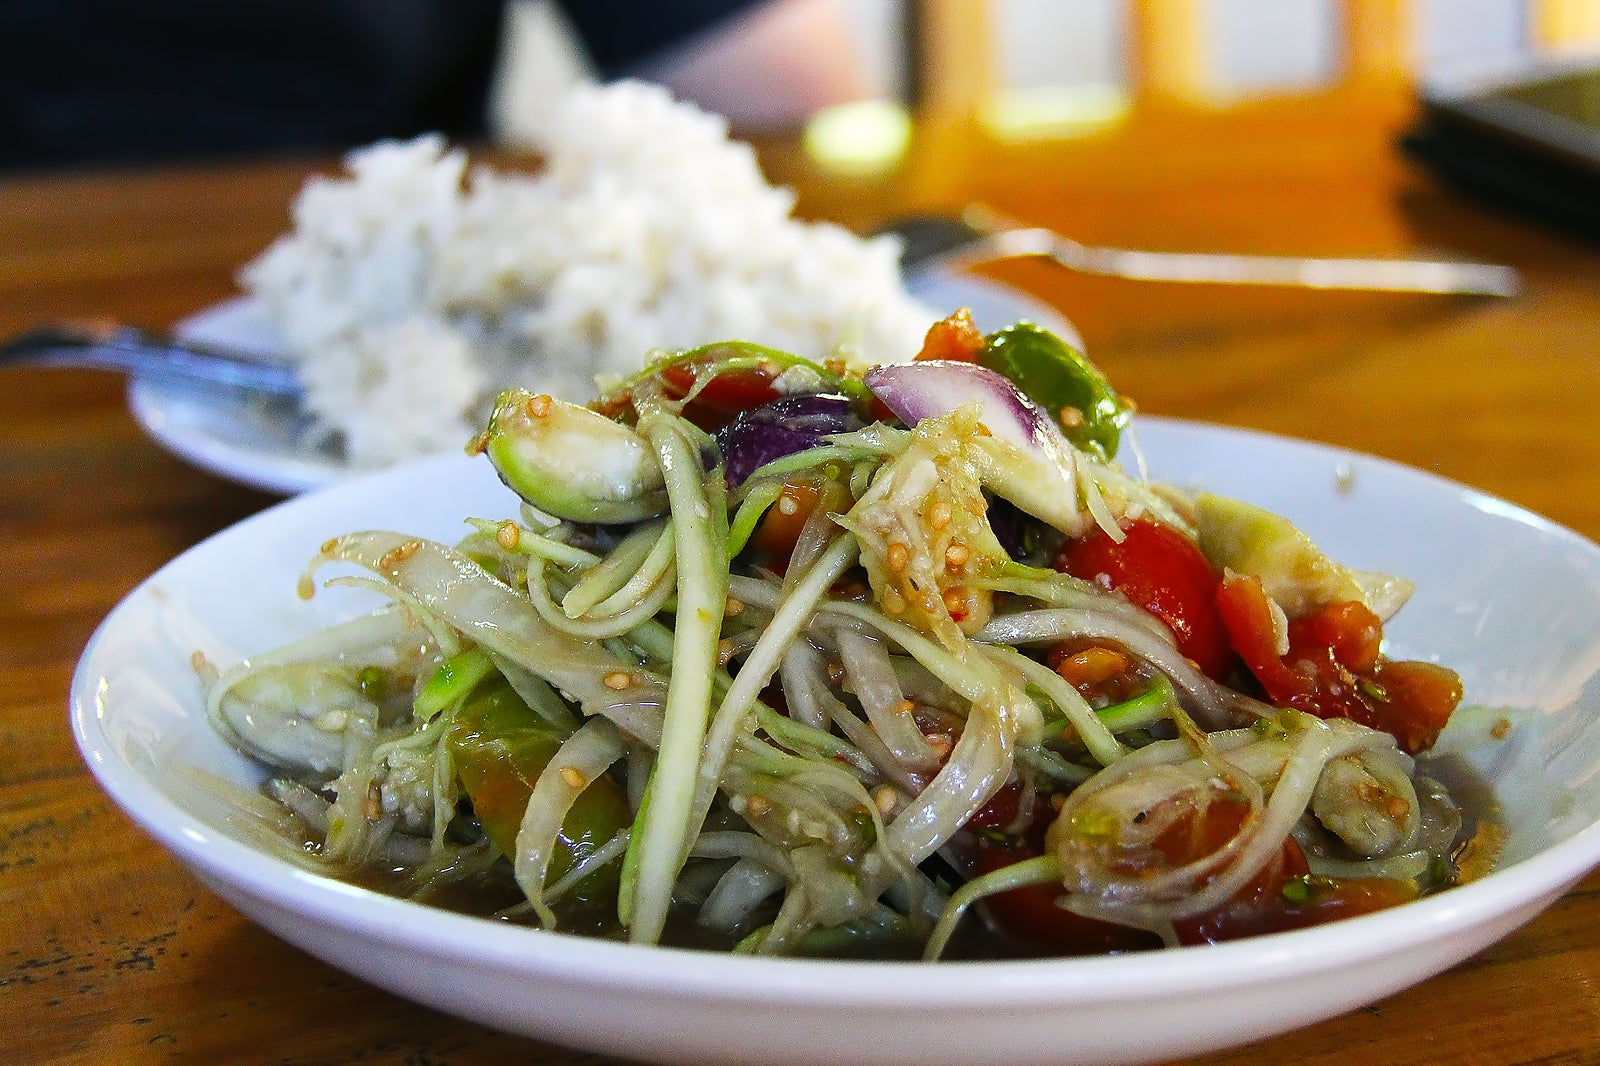 14 Great Restaurants in Vientiane - Where and What to Eat in Vientiane